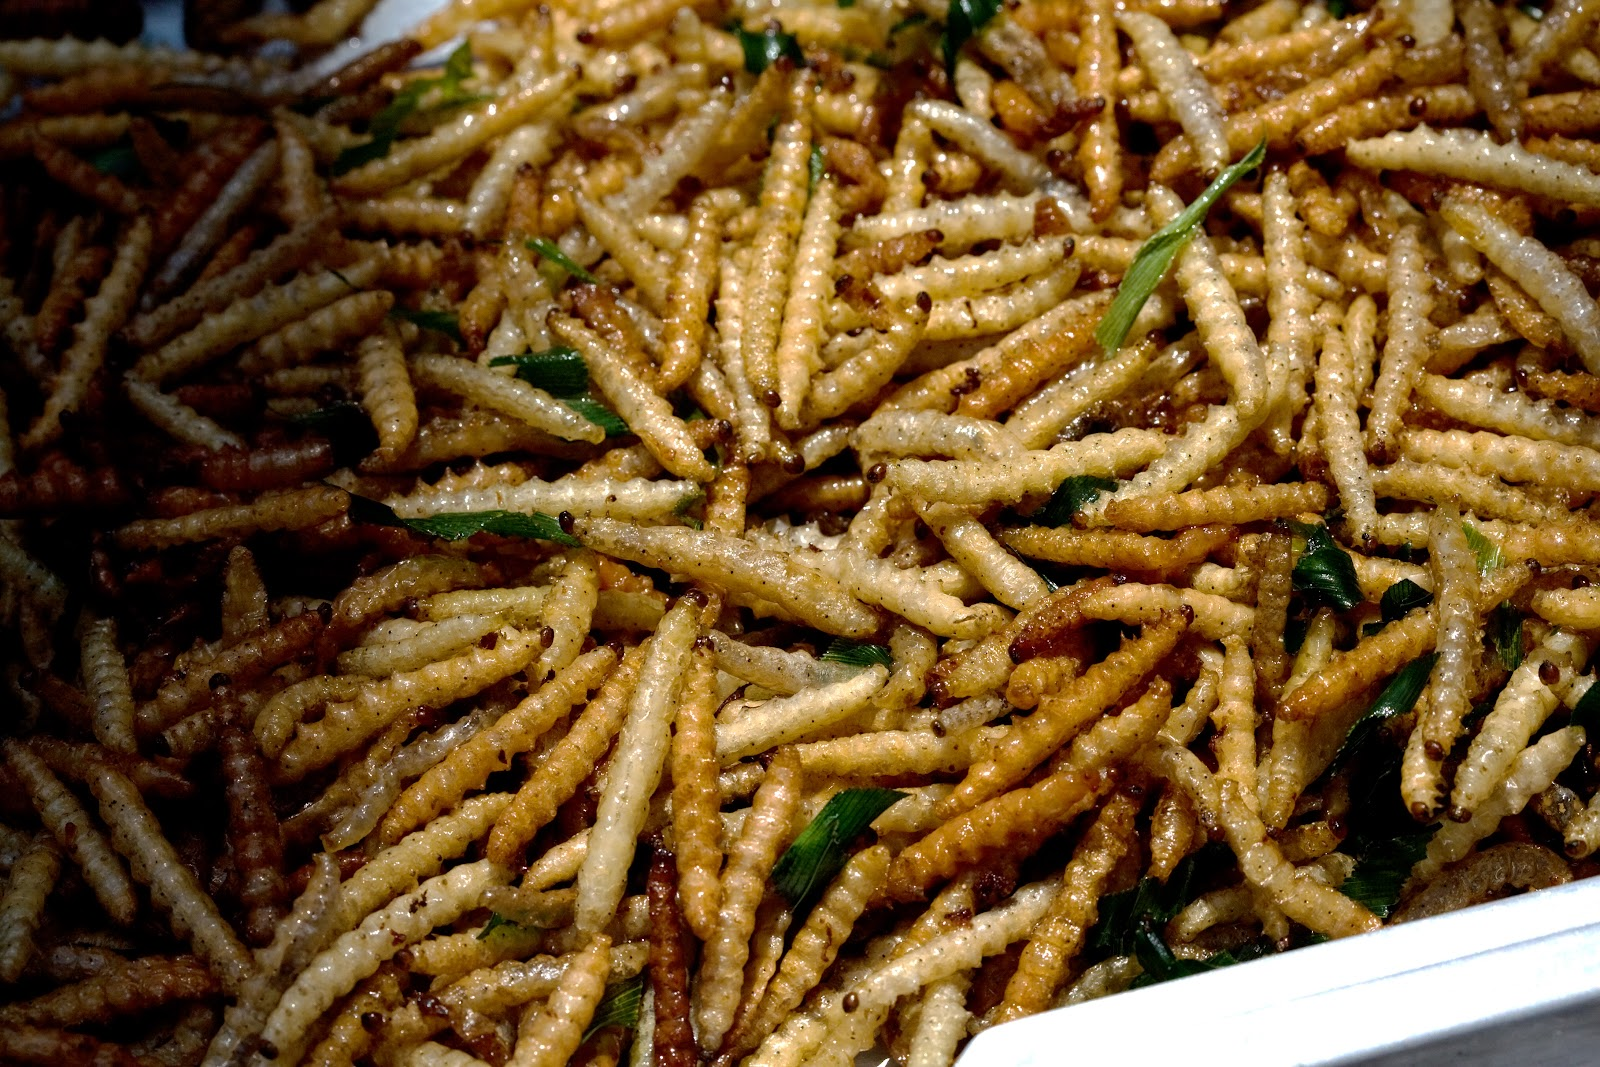 https://upload.wikimedia.org/wikipedia/commons/c/cb/Bamboo_worms_food.jpg